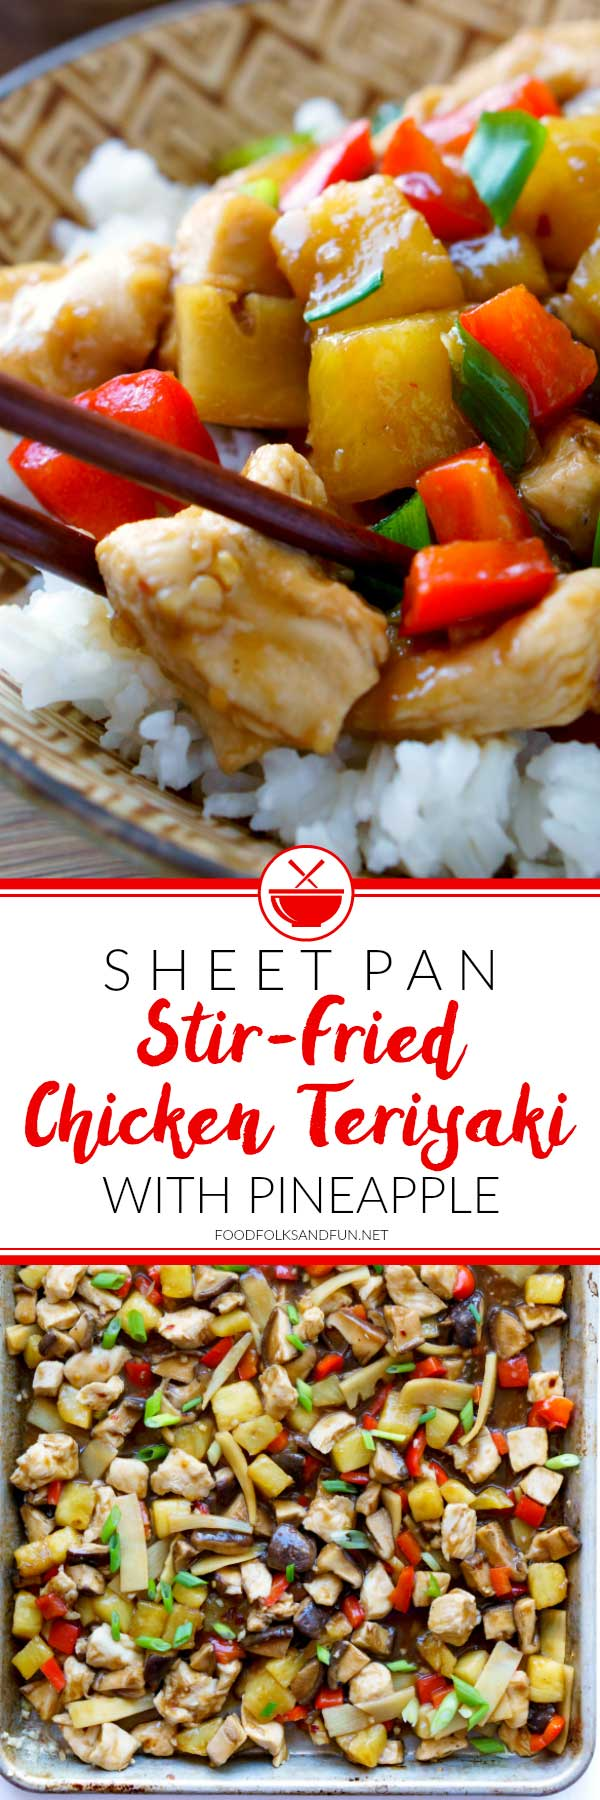 Picture collage of chicken teriyaki for Pinterest.